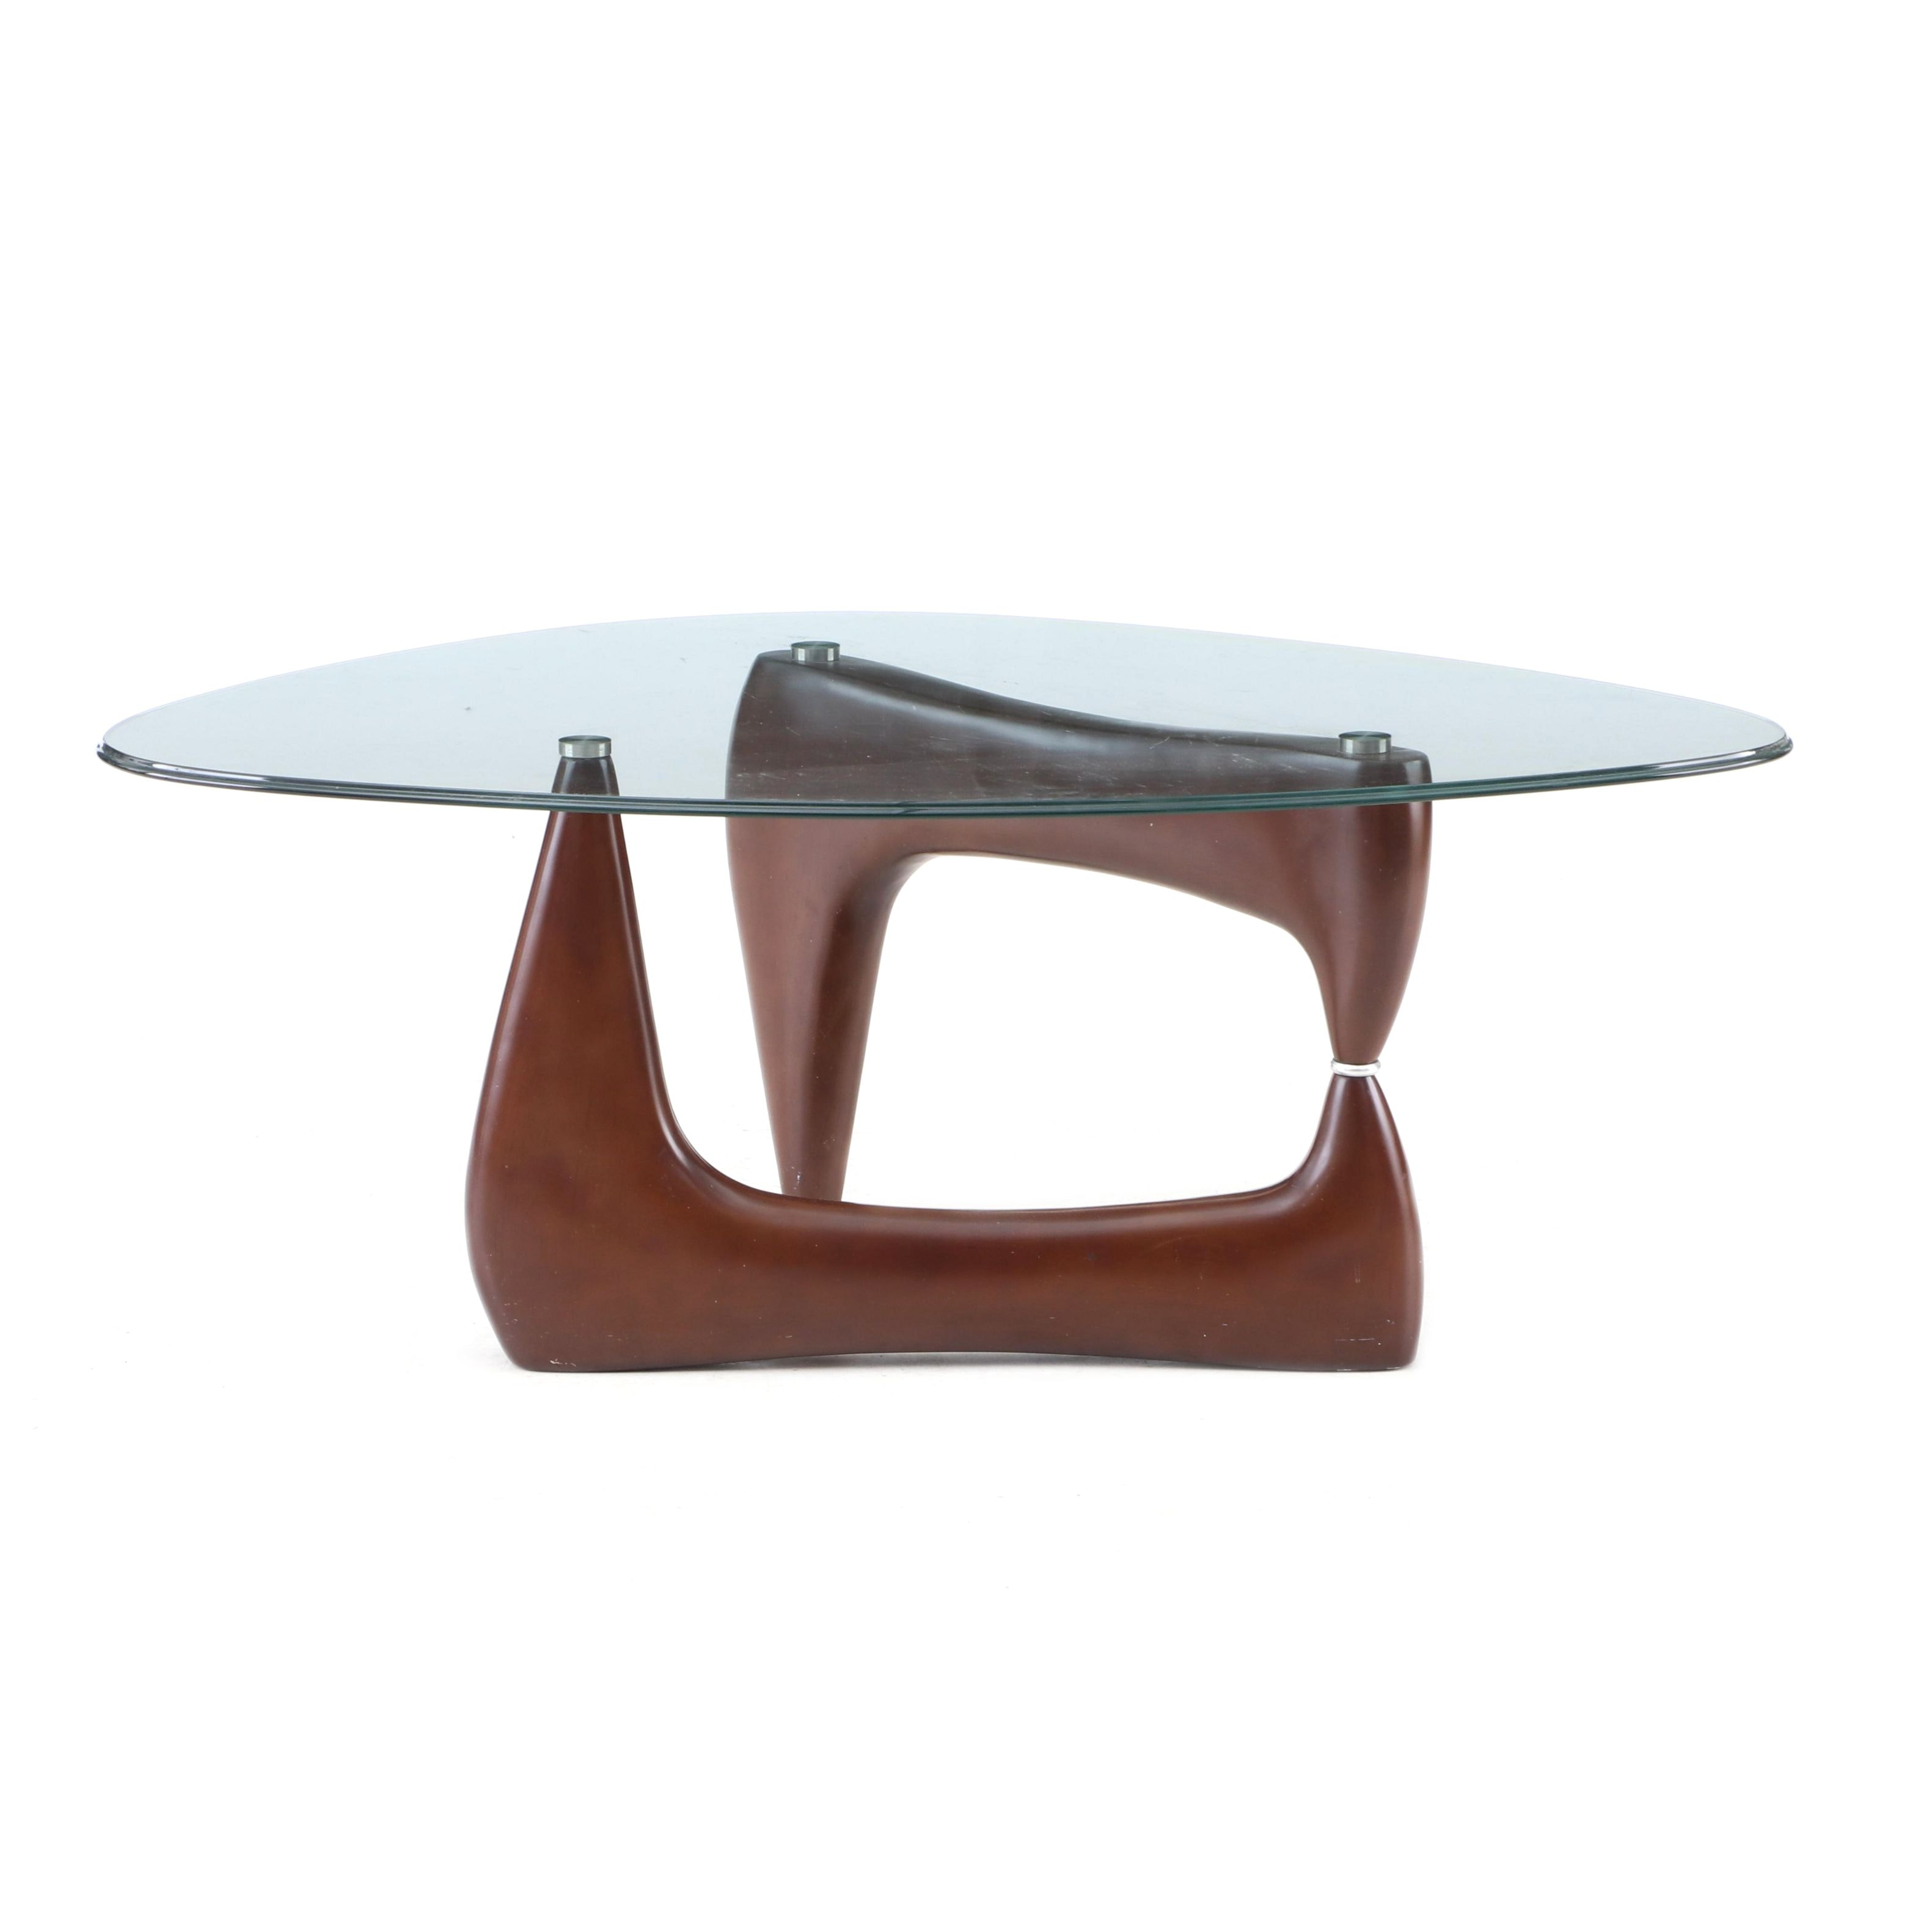 Isamu Noguchi Style Coffee Table, 20th Century